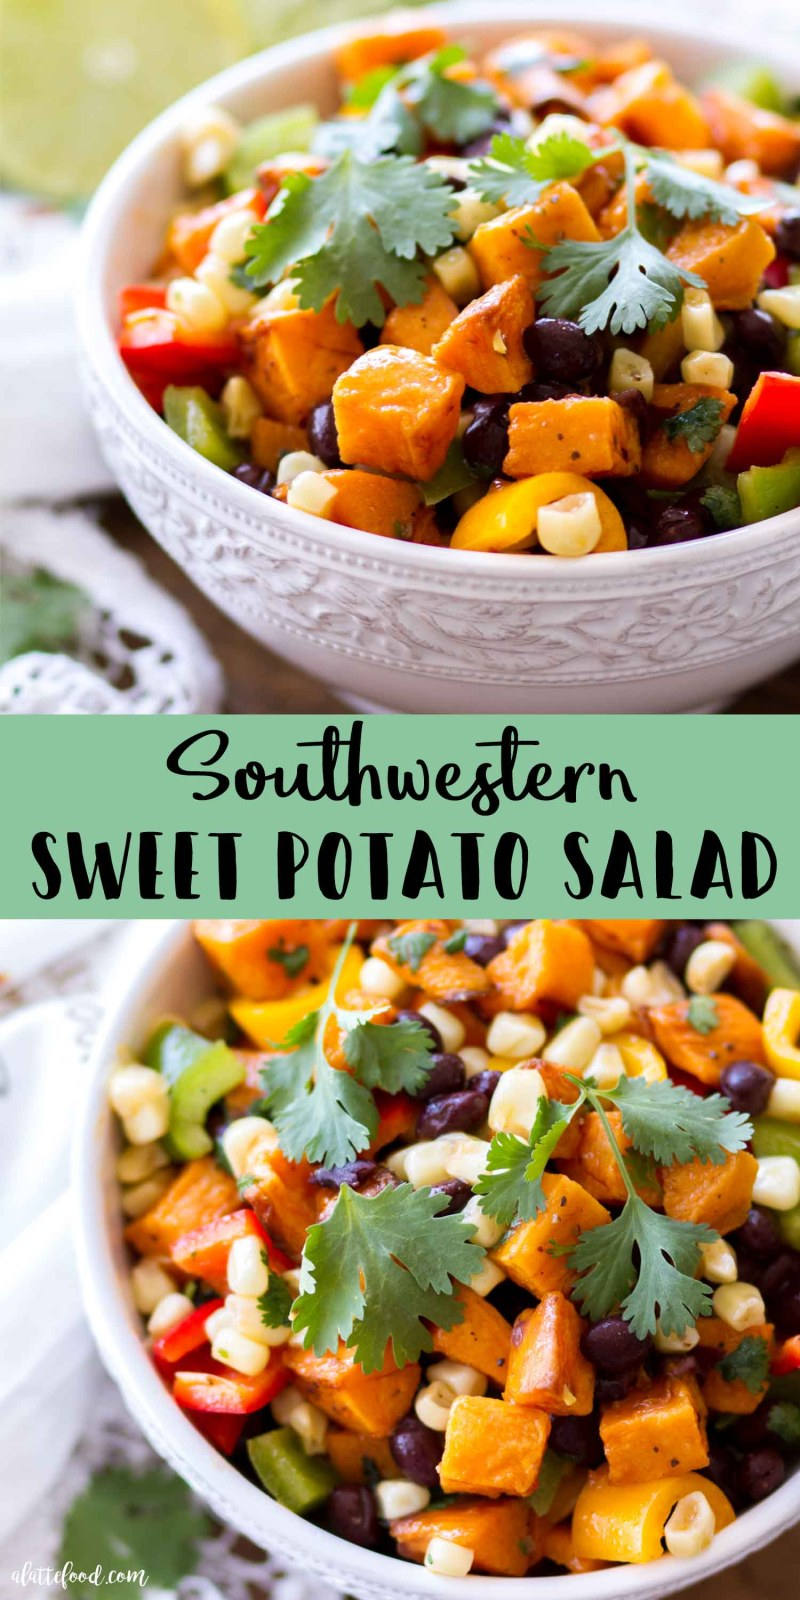 collage pictures of southwestern sweet potato salad in white bowls